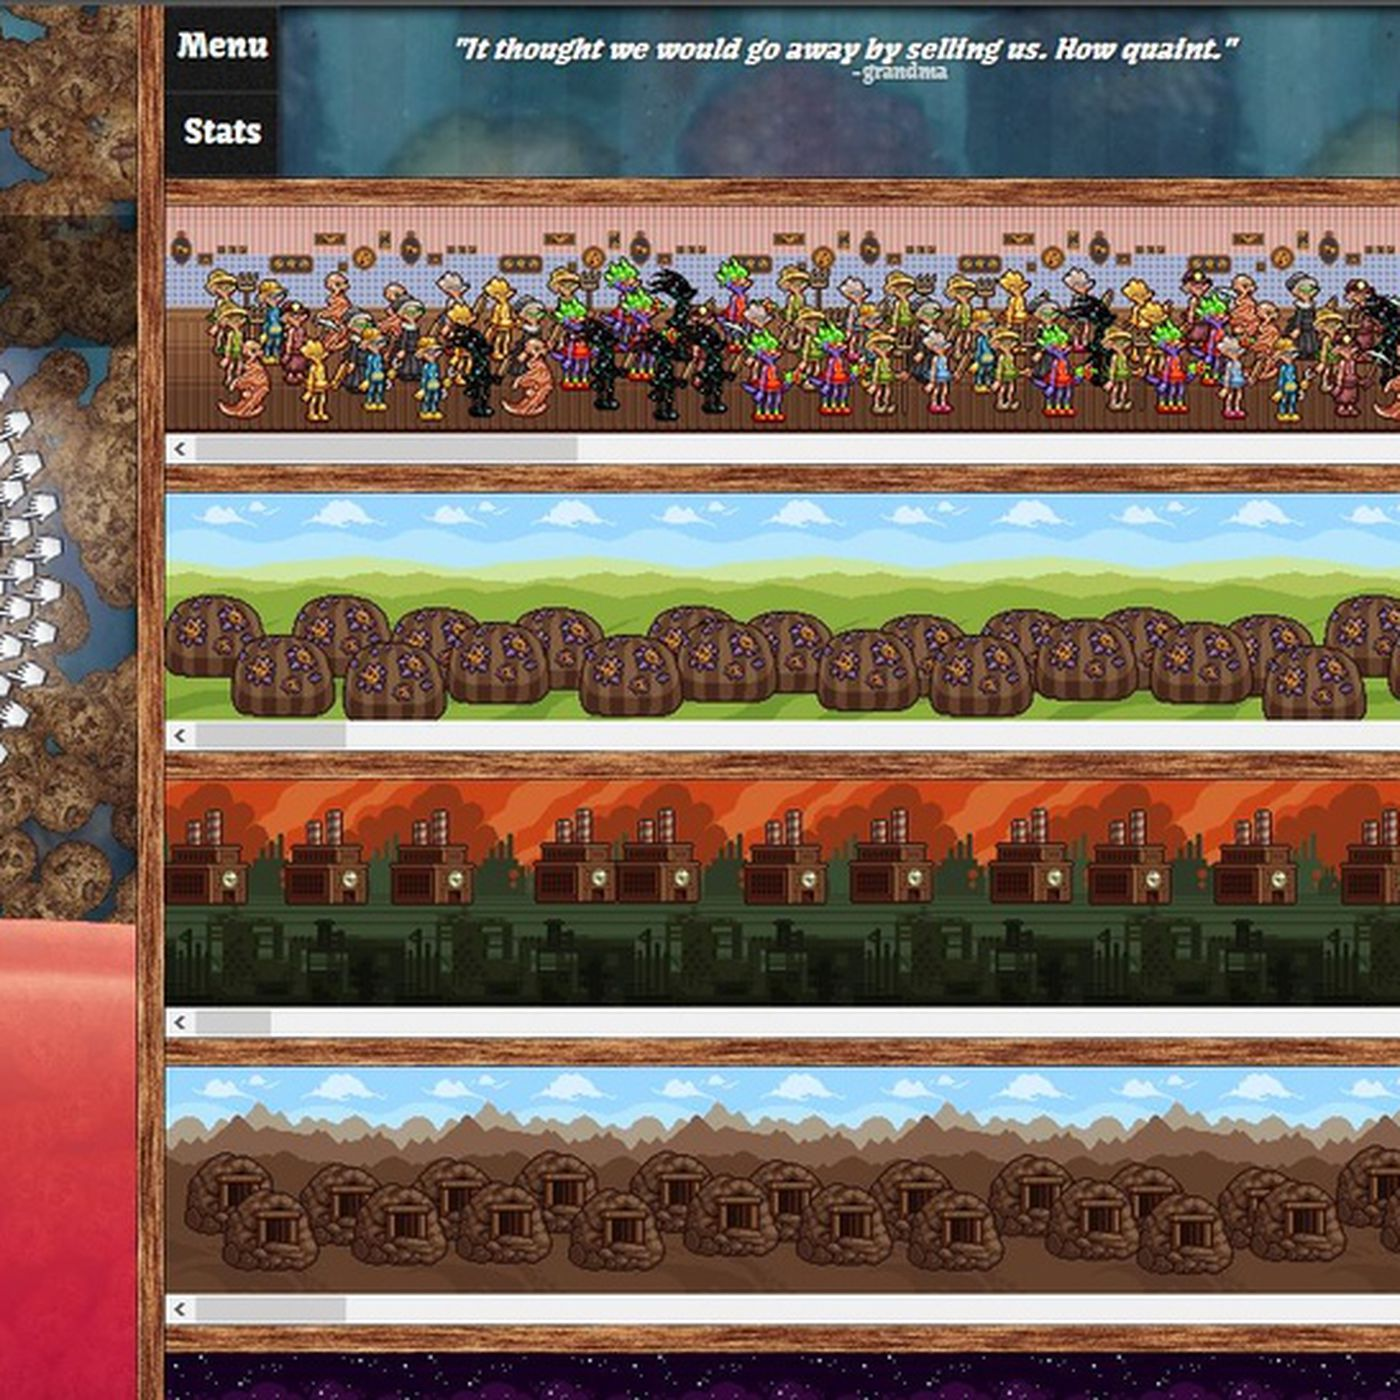 The cult of the cookie clicker: When is a game not a game